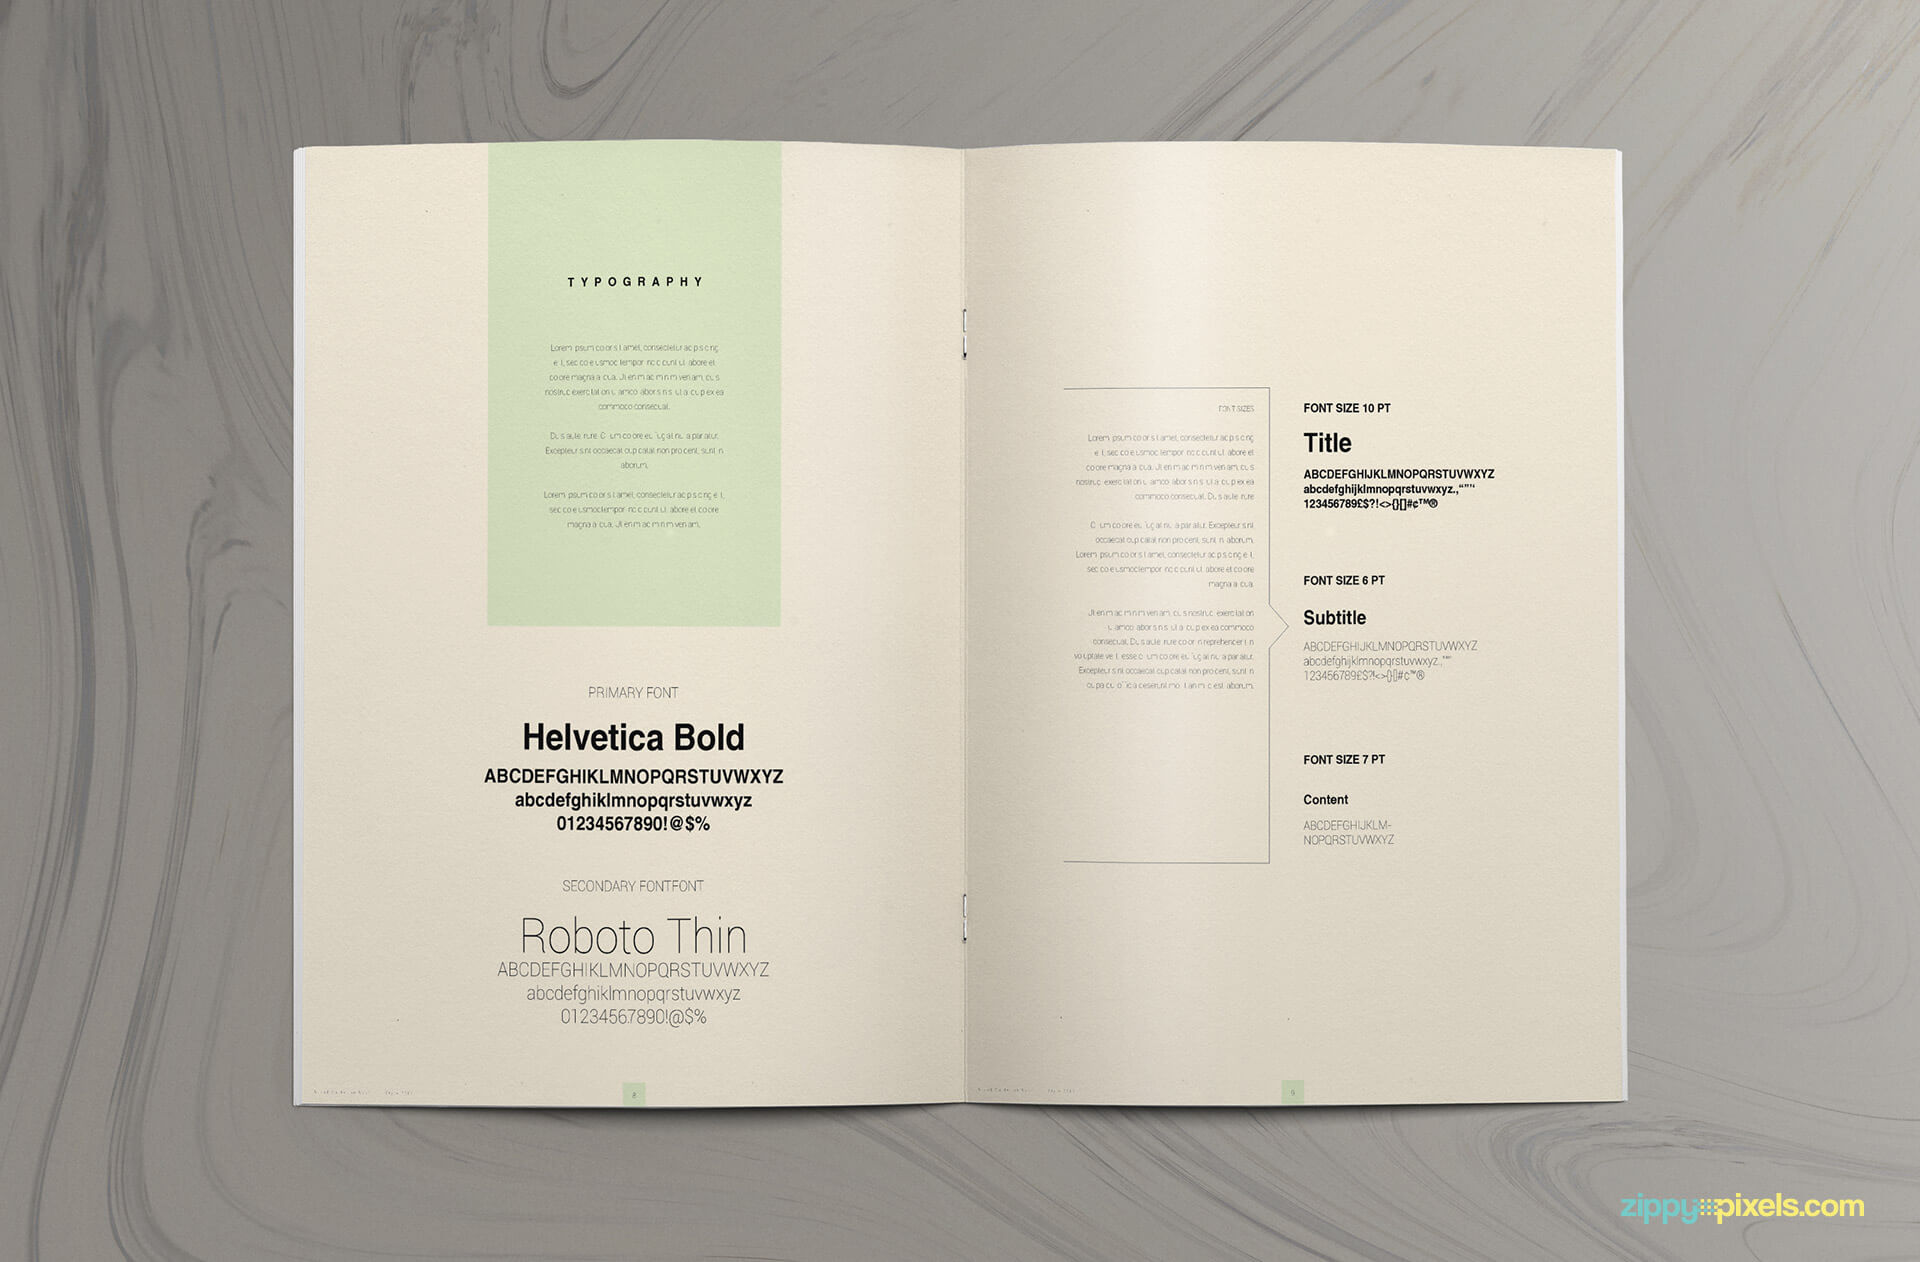 fully customizable corporate brand style guide